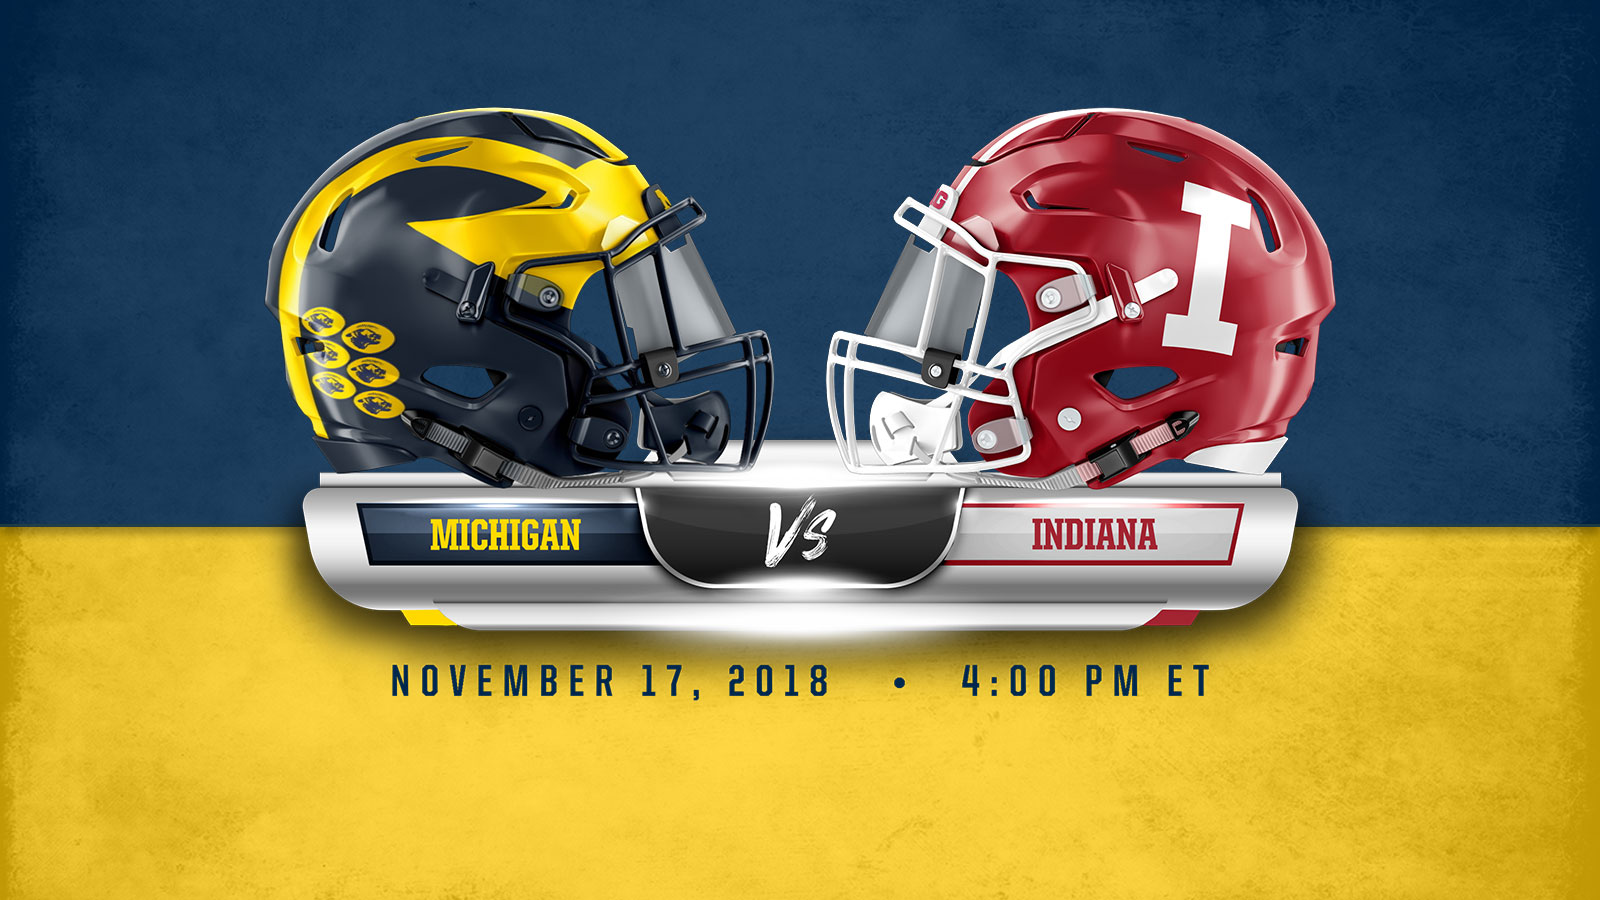 Michigan Monday Game 11 Vs Indiana University Of